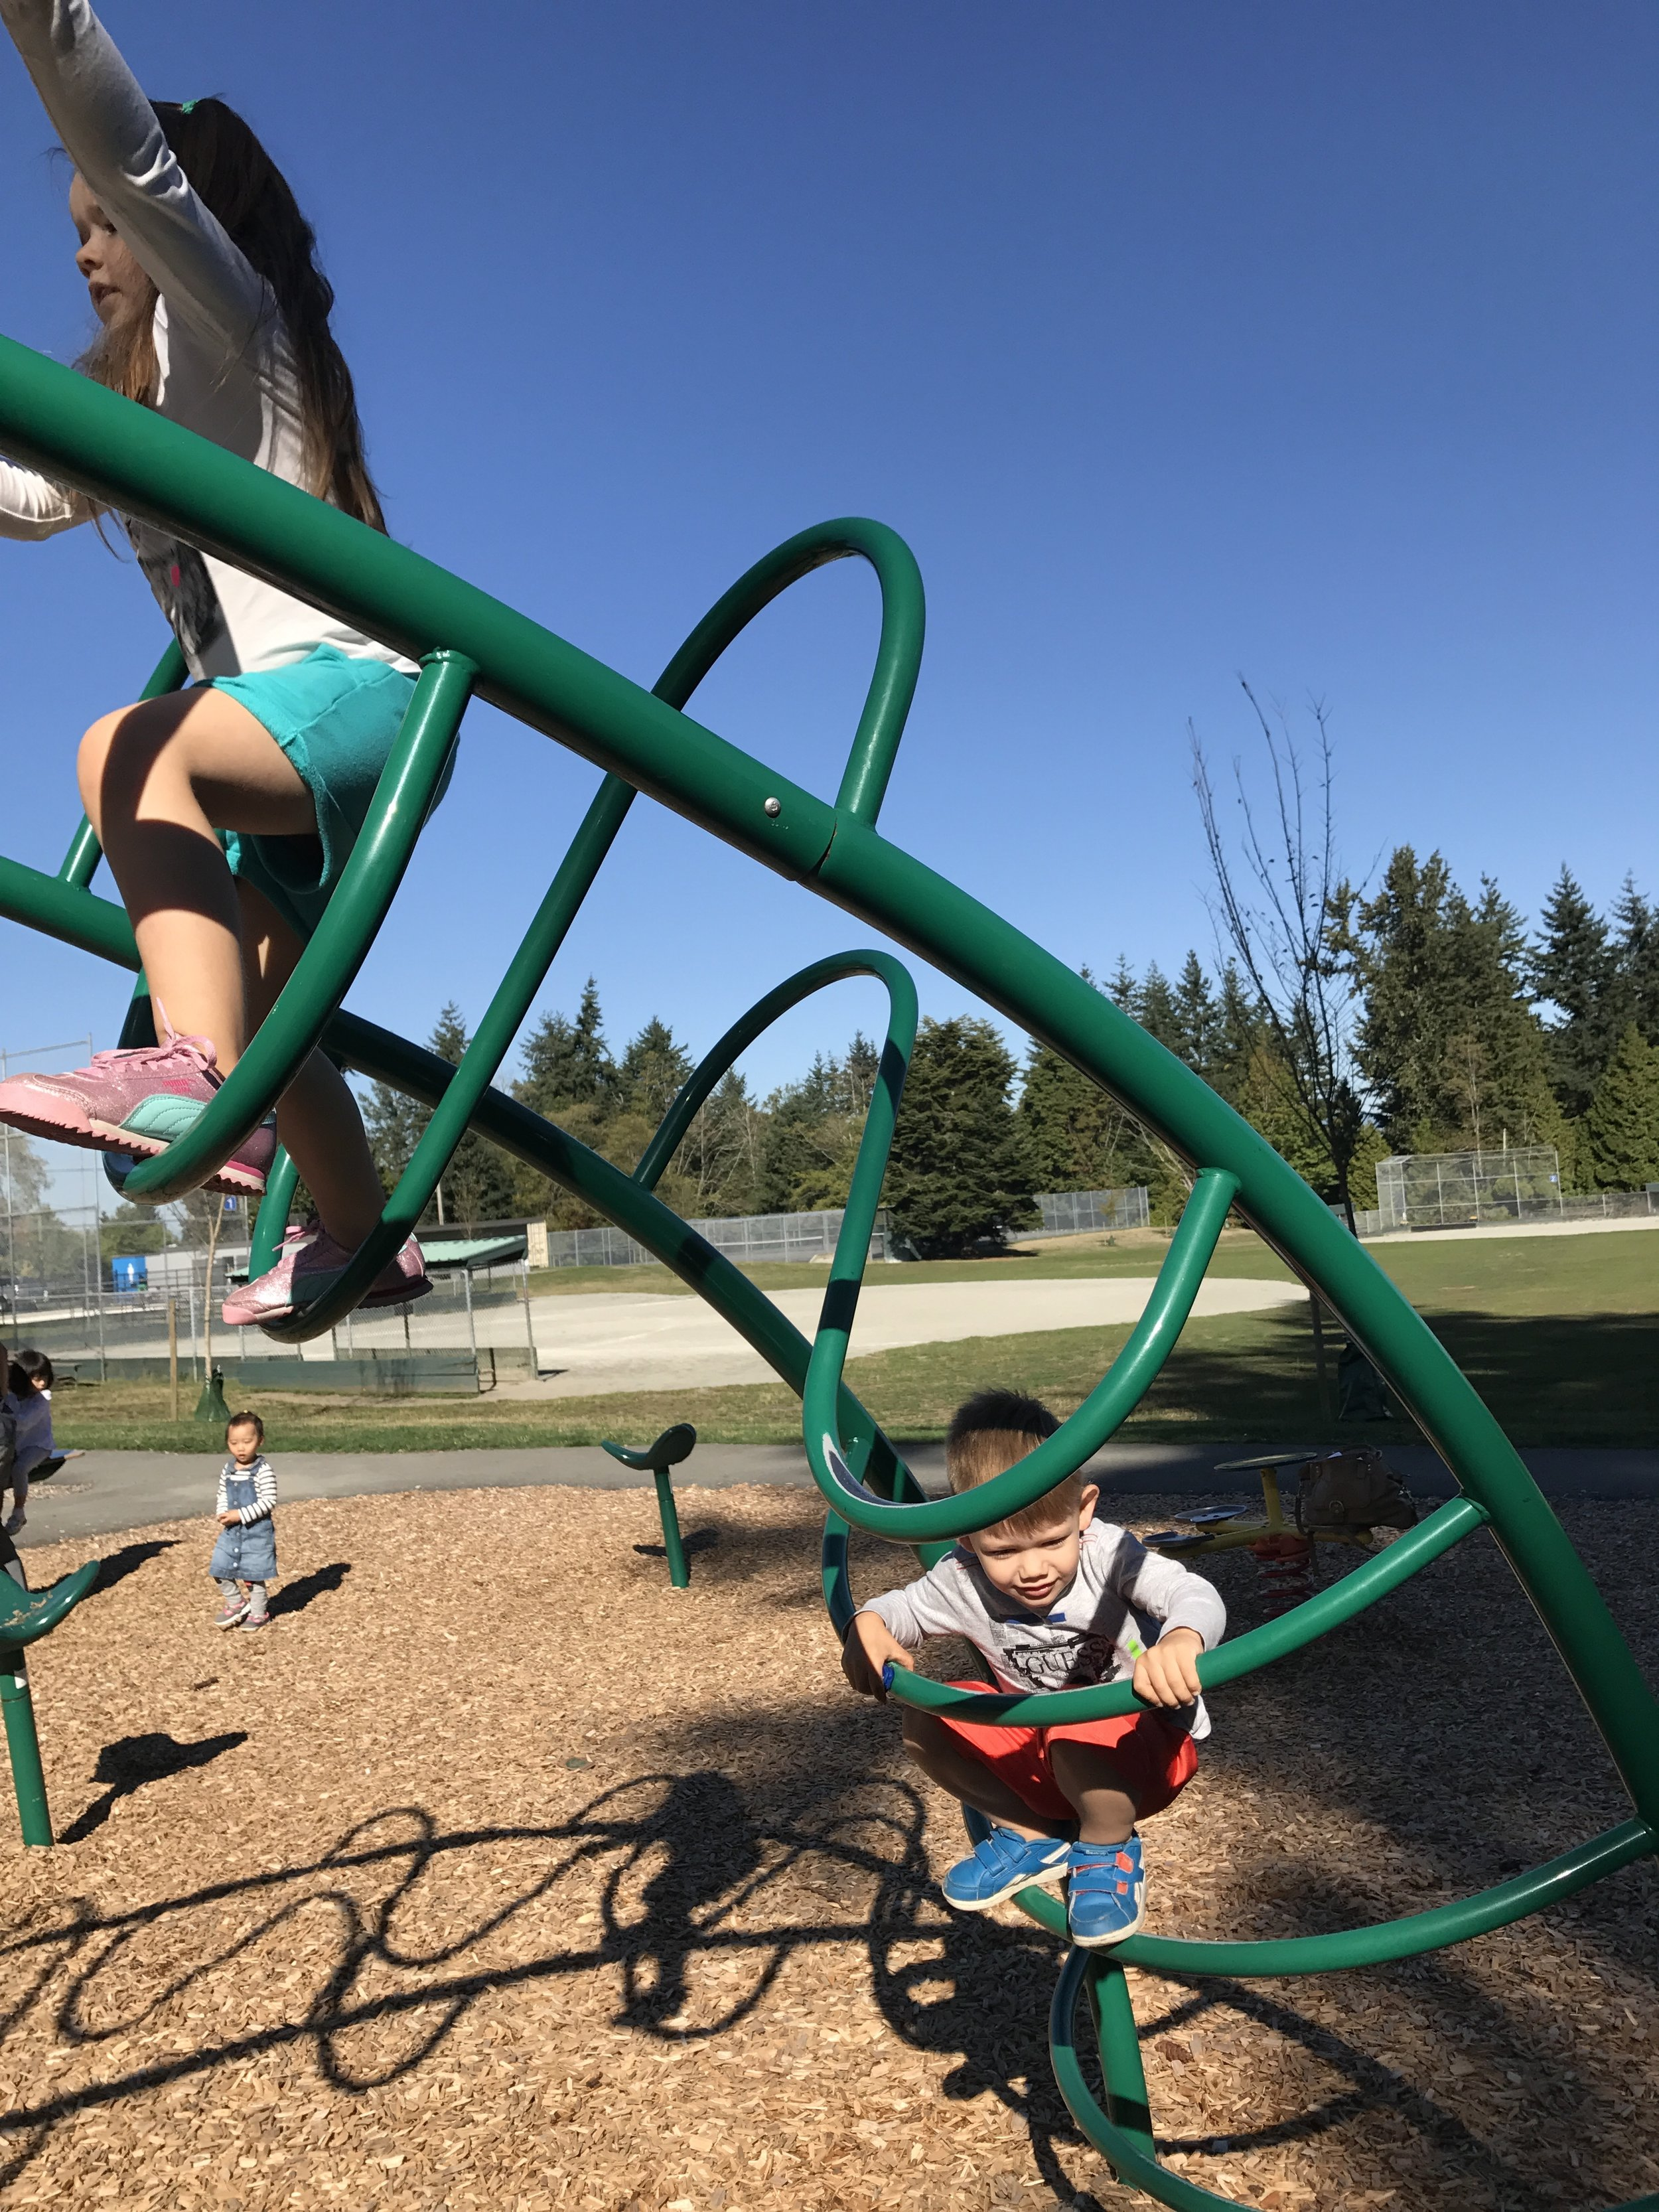 So many activities for little climbers can be found at Sunnyside!